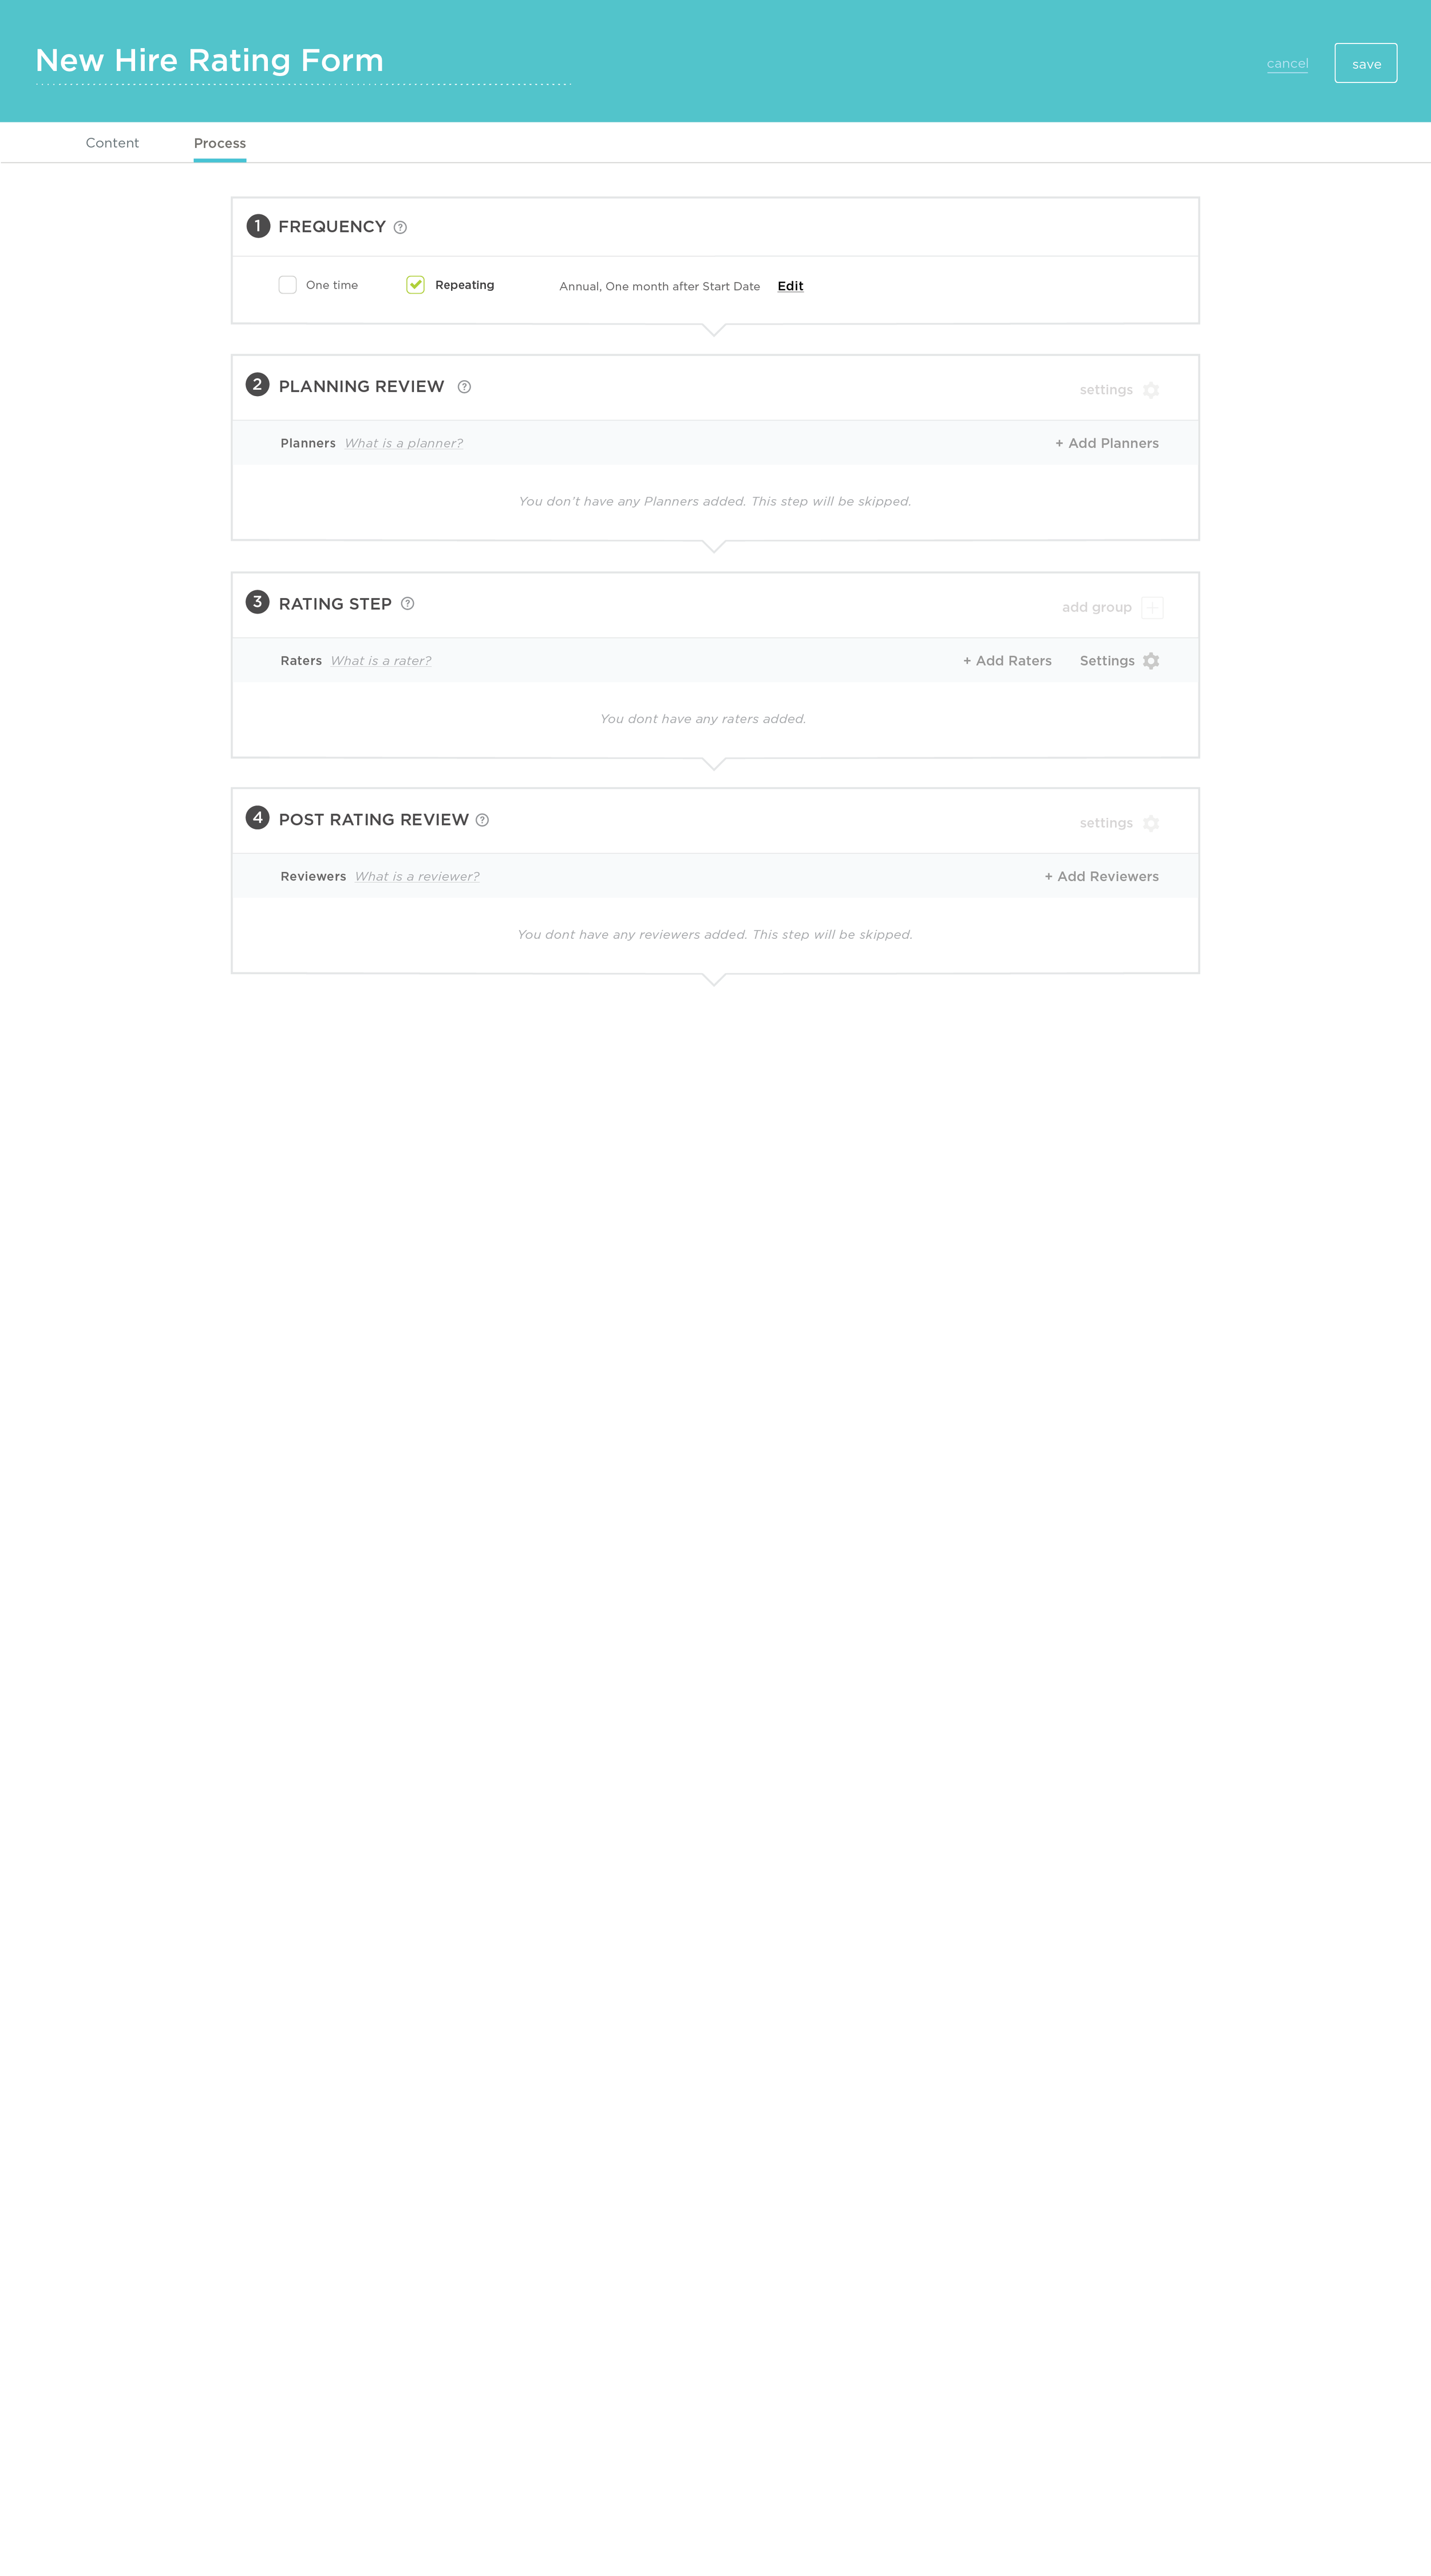 Invision_Pe_rating-form-process_03_5.png